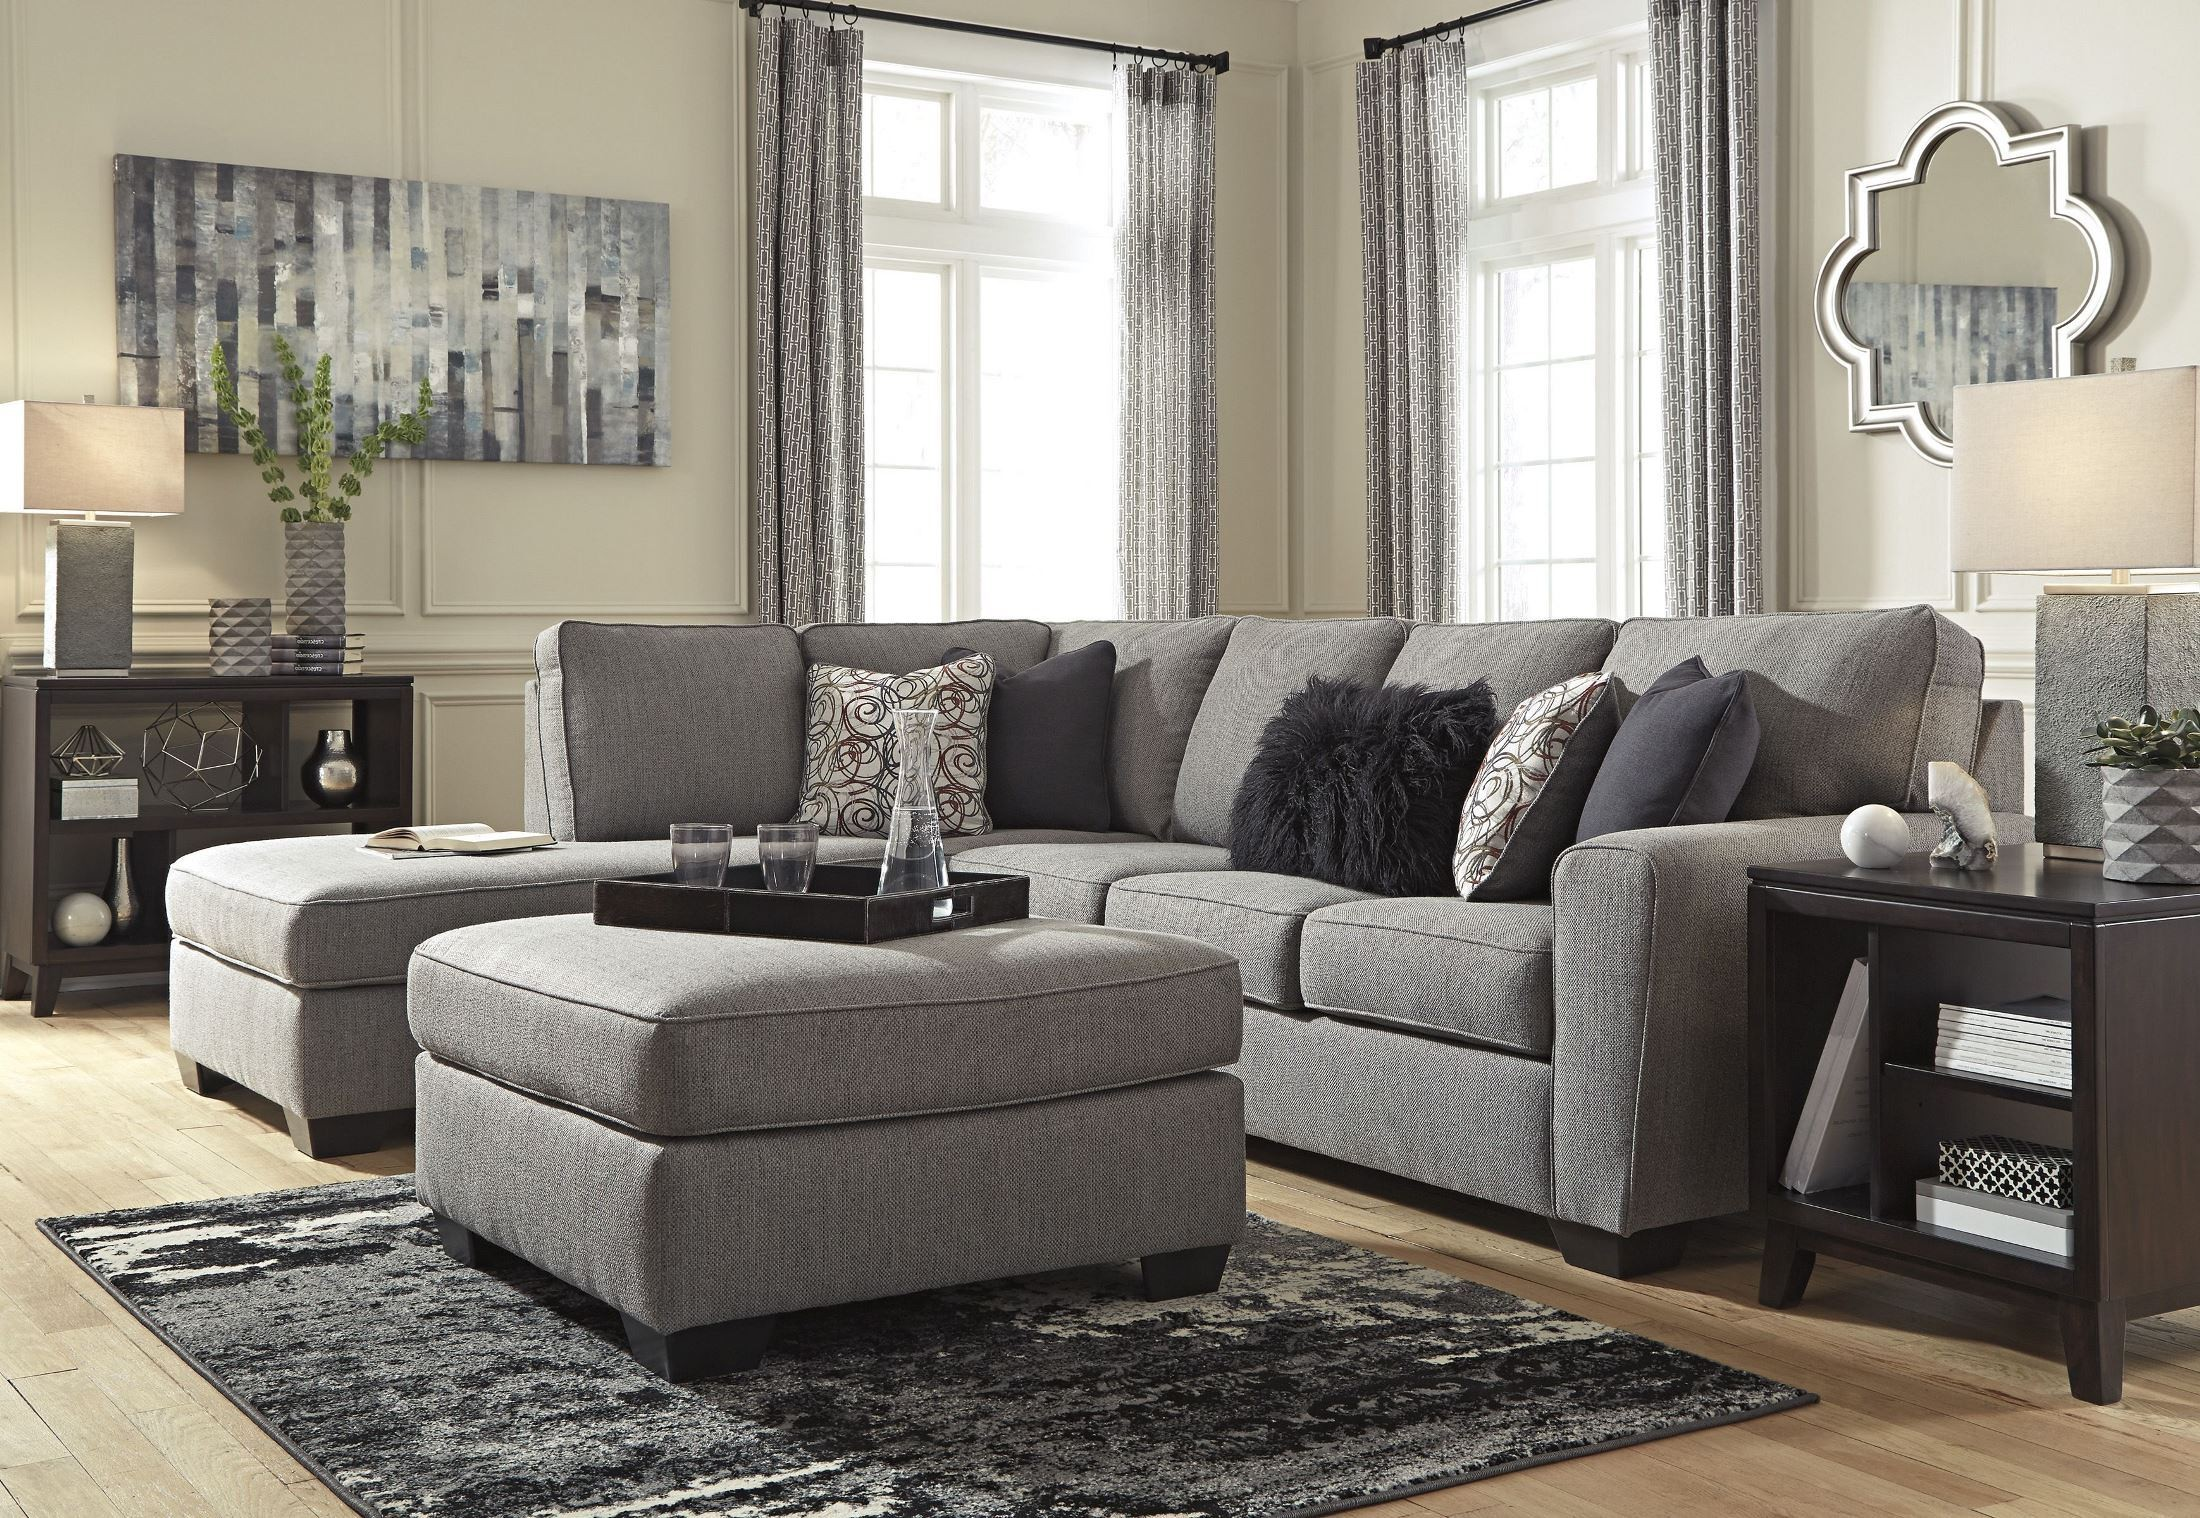 Larusi Iron Oversized Accent Ottoman From Ashley Coleman